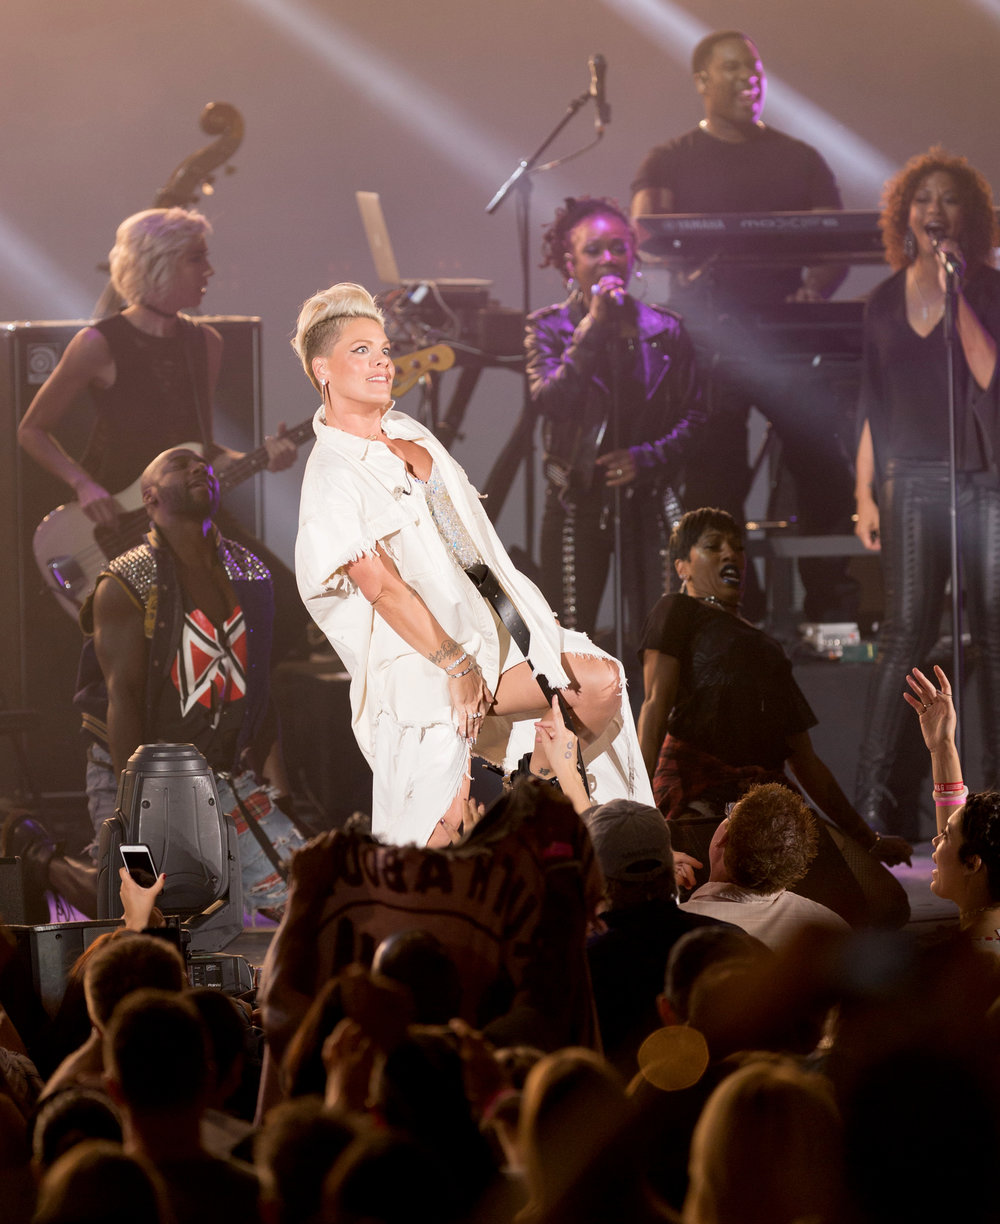 American singer P!nk (Alecia Beth Moore) moves through the crowd to get on stage for her performance to close out the night at the Hollywood Bowl for CBS Radio's We Can Survive concert to raise money for breast cancer in Los Angeles, Calif on Saturday, October 21st 2017. (Photo by: Thane Fernandes)